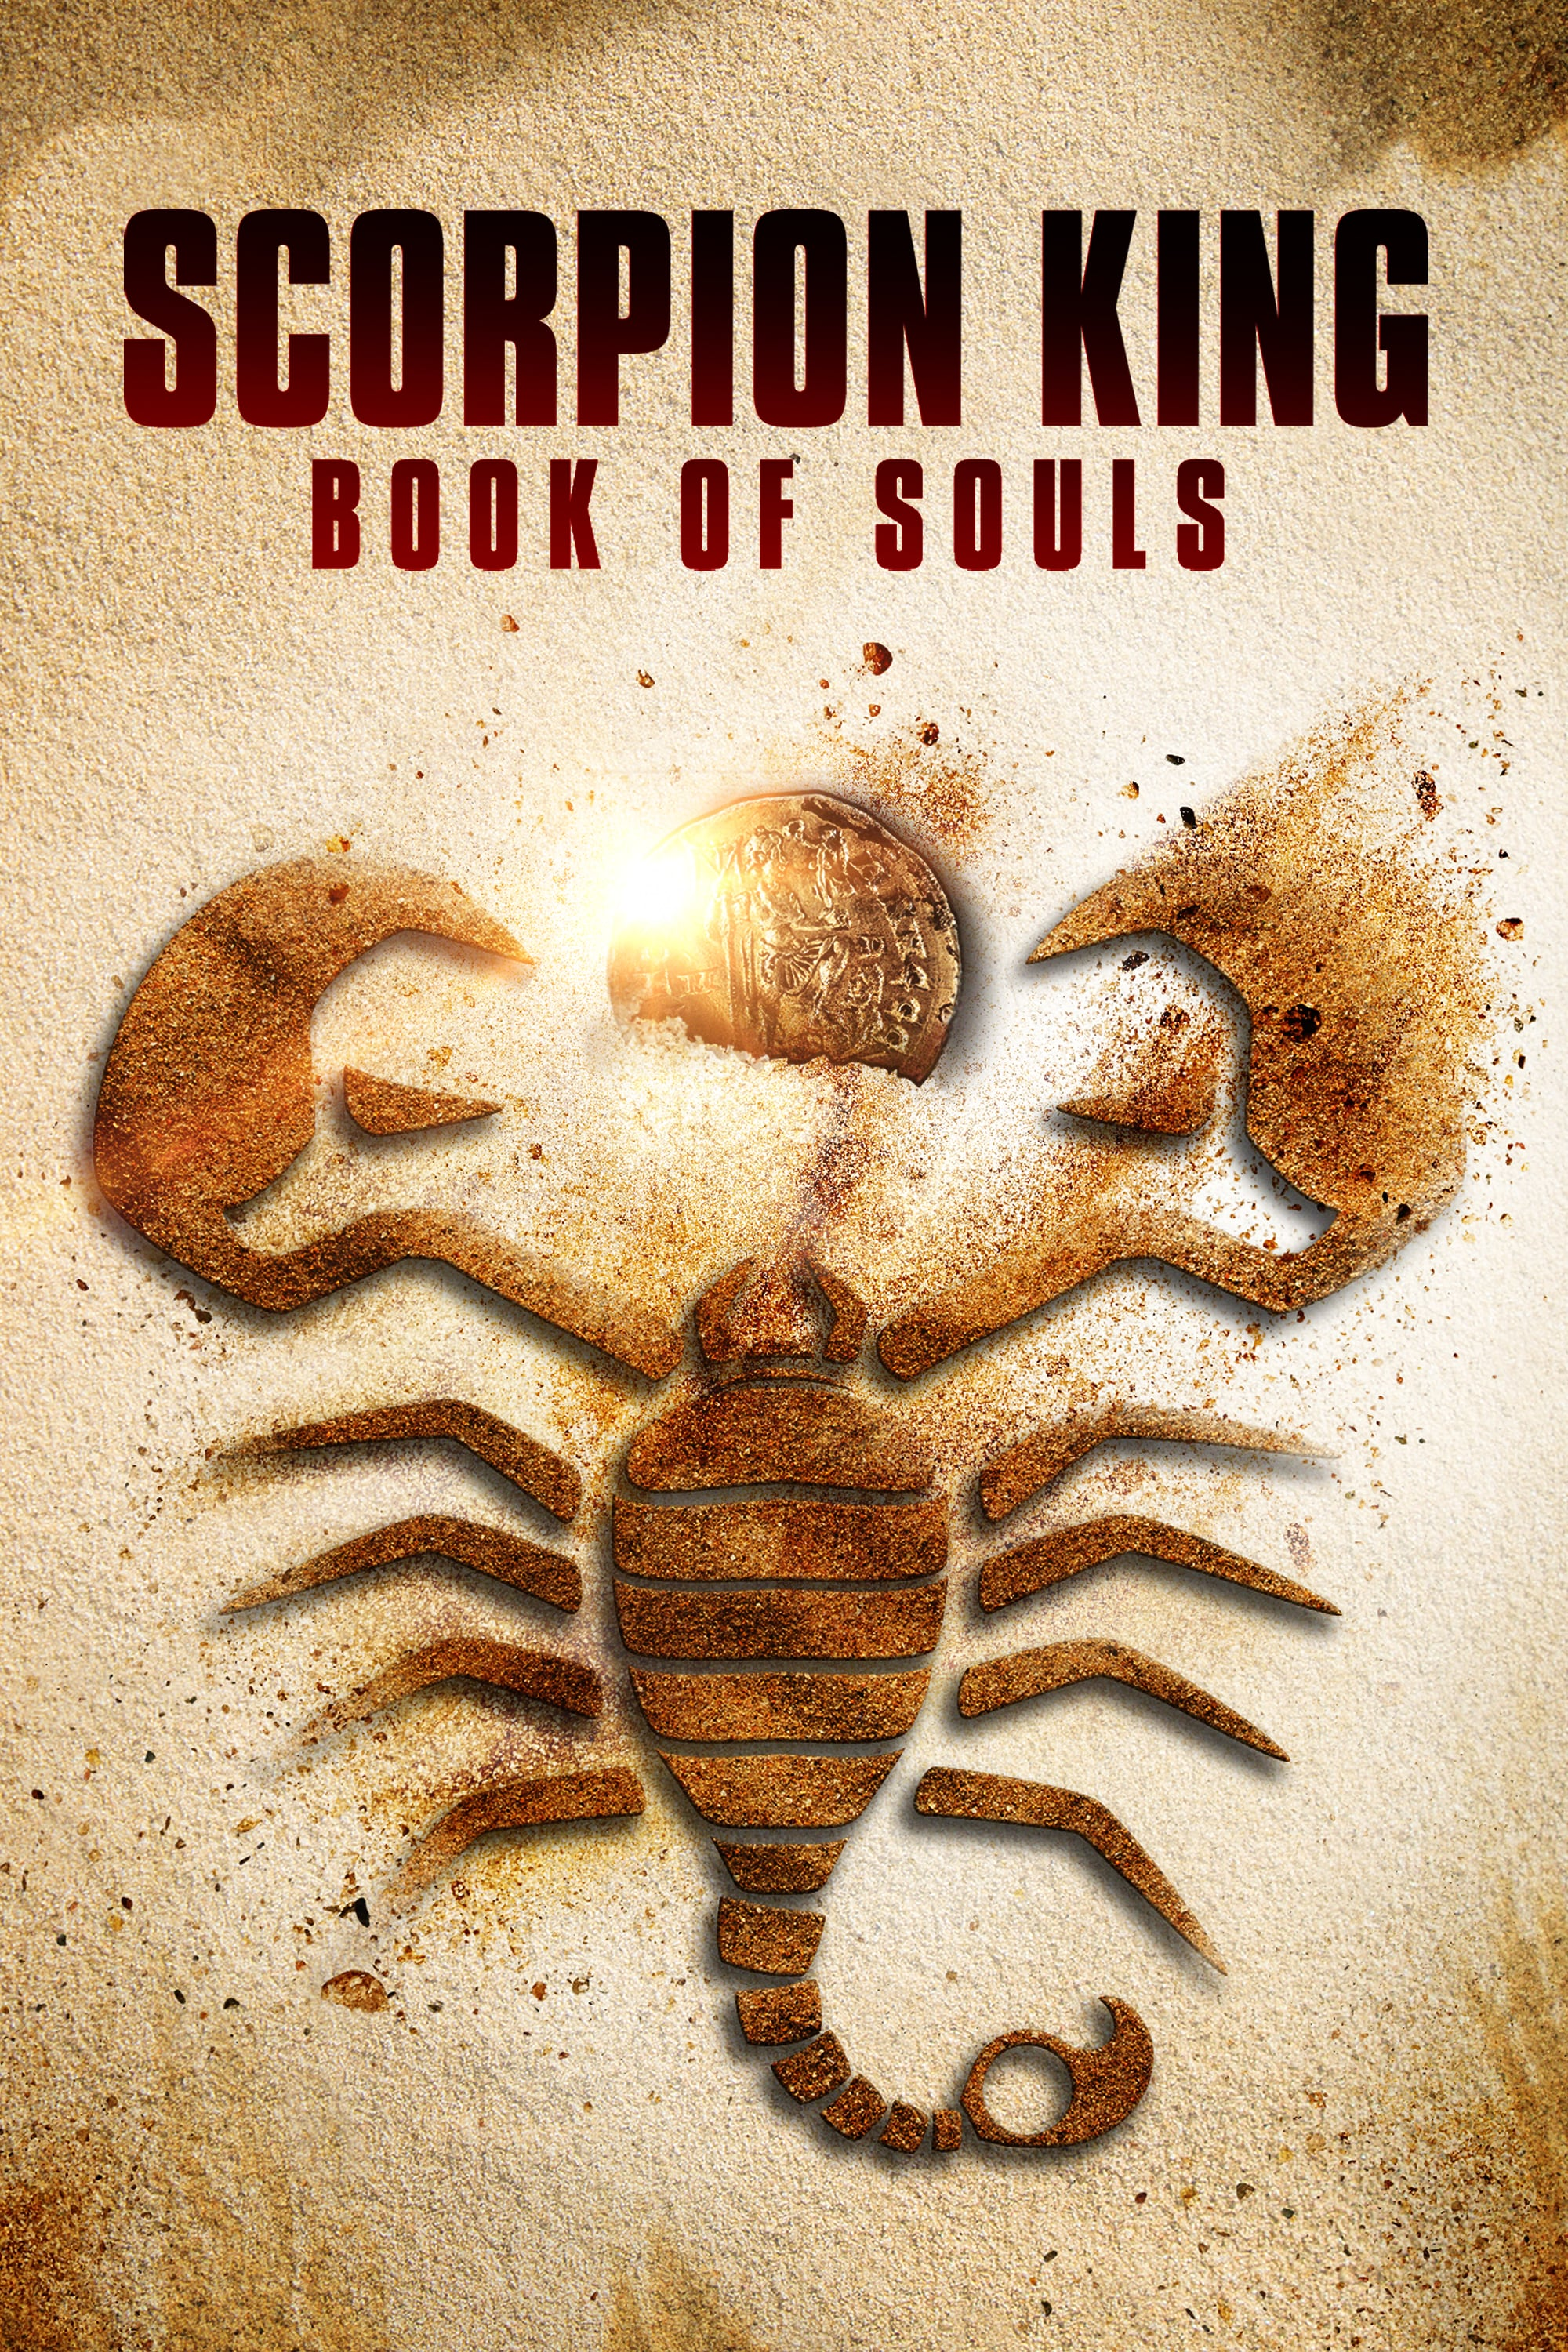 Movie Mastery – The Scorpion King 5: Book of Souls (2018